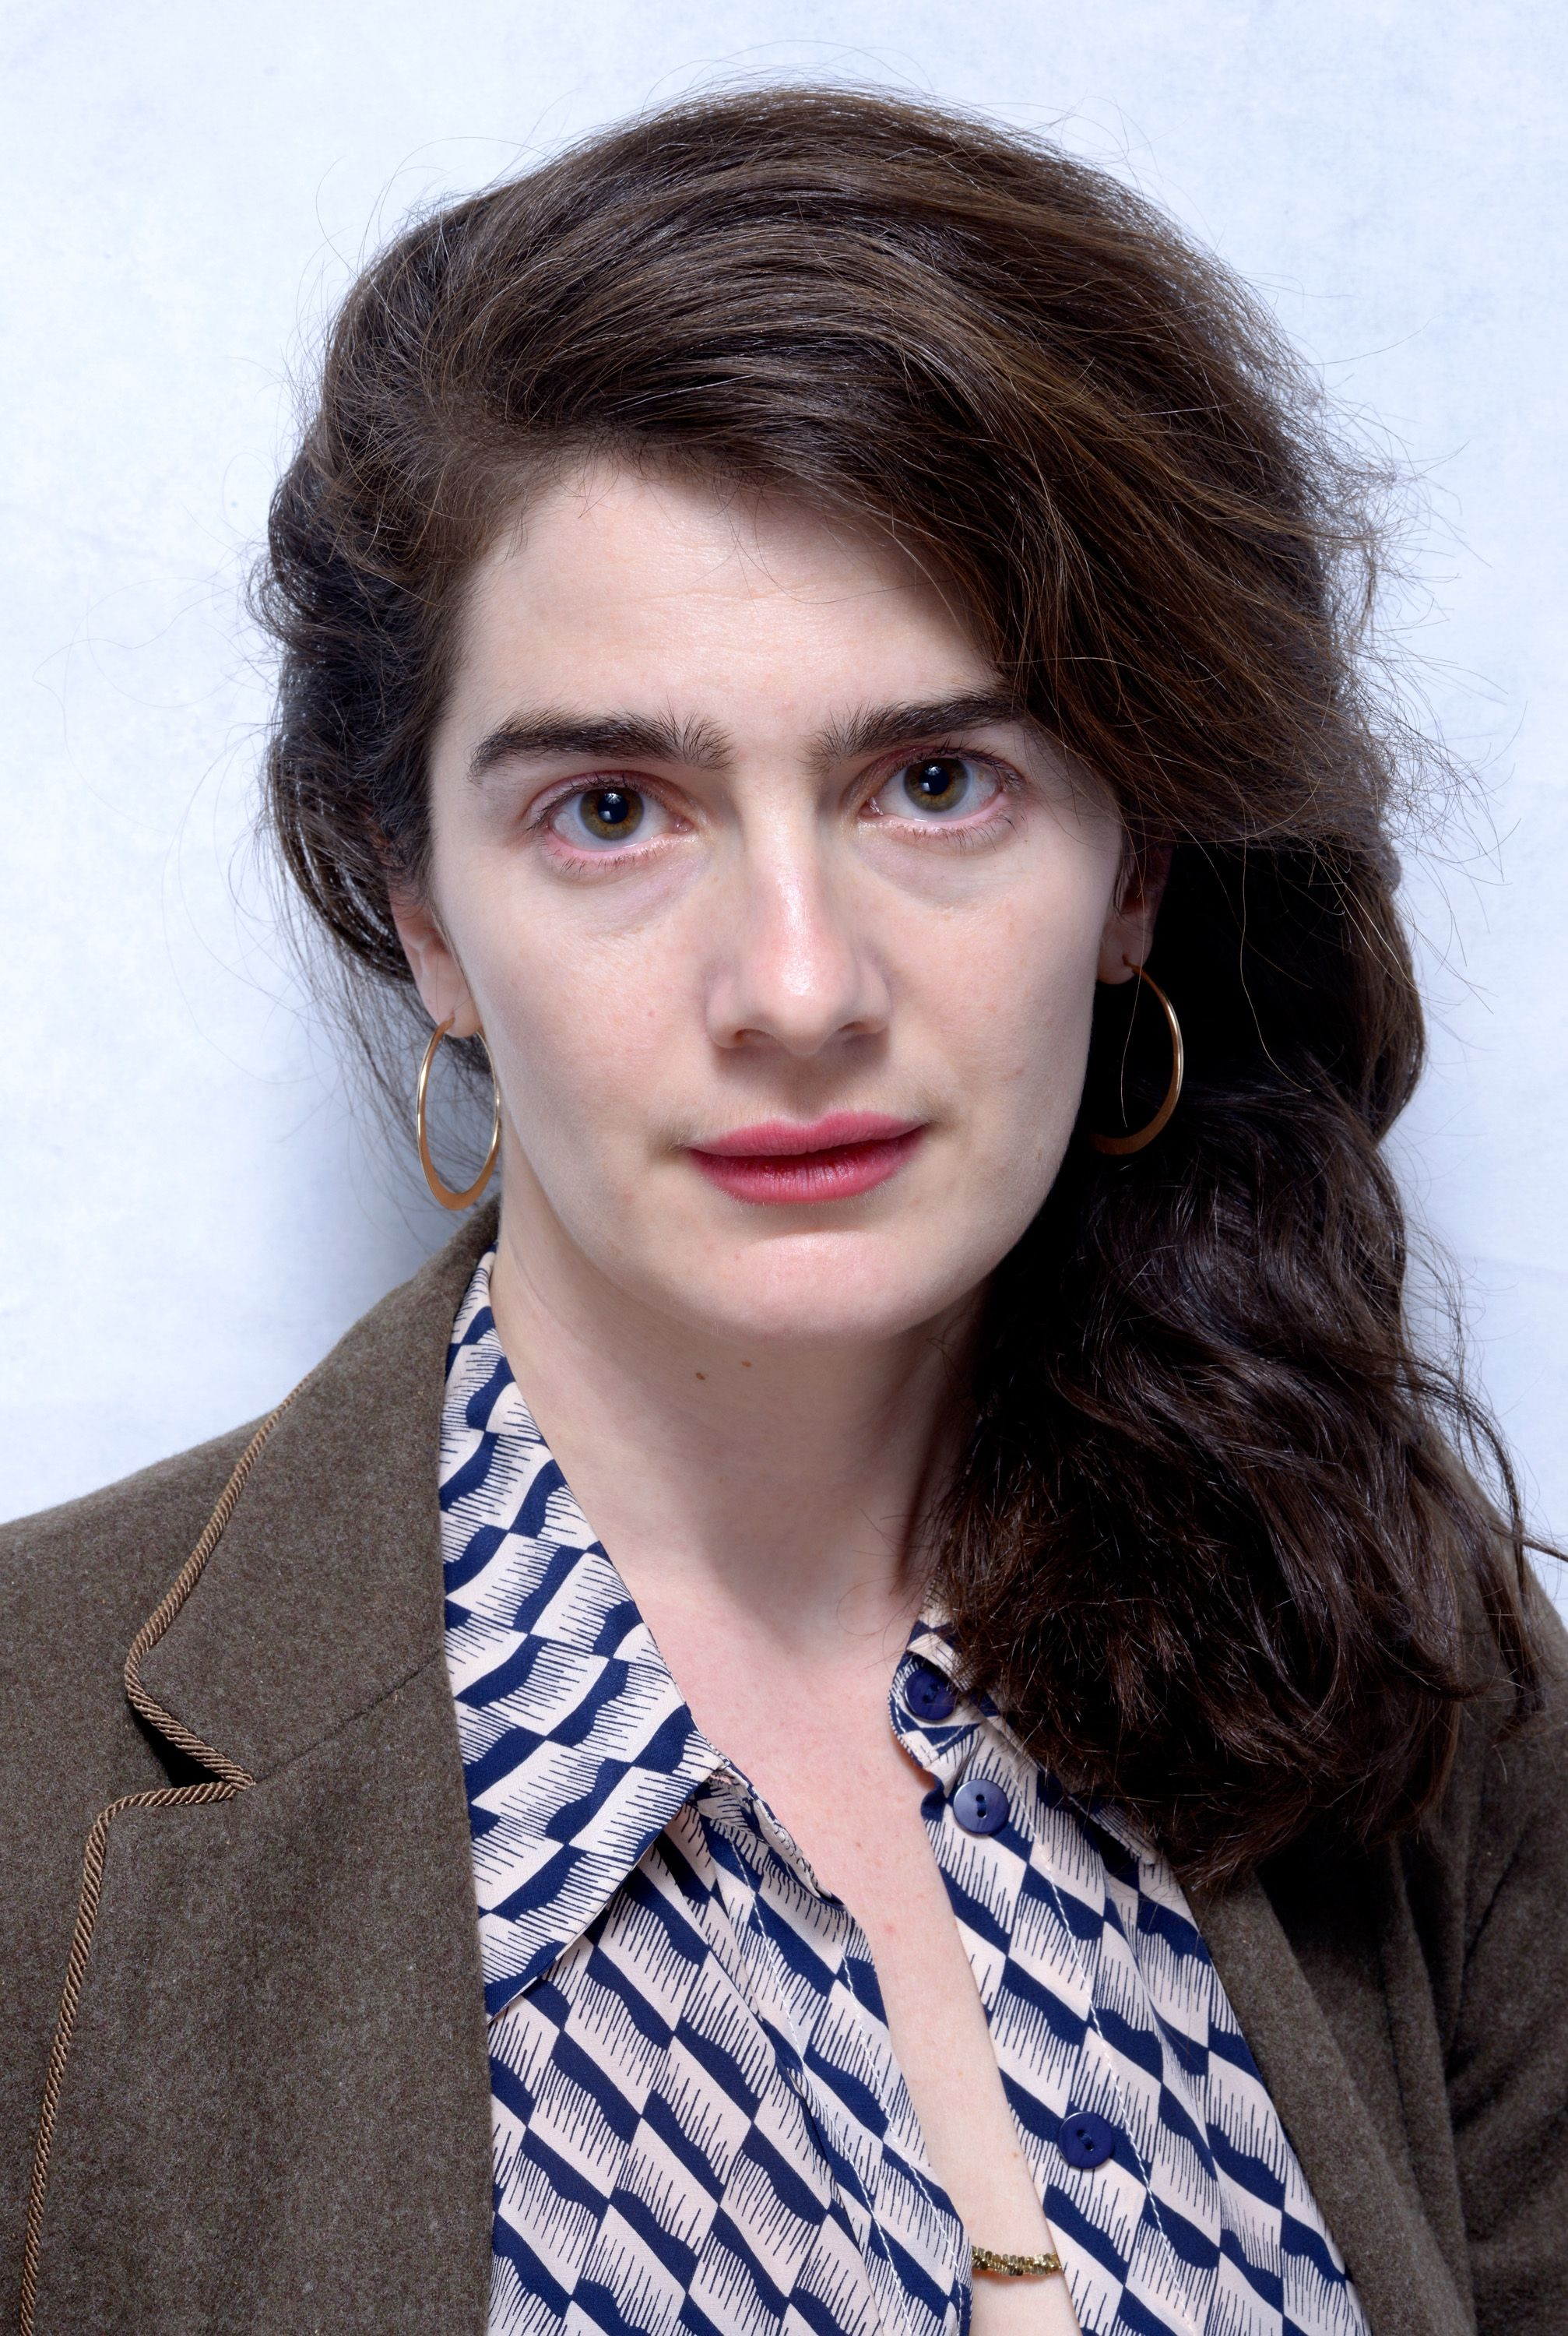 Pussy Pictures Gaby Hoffmann naked photo 2017